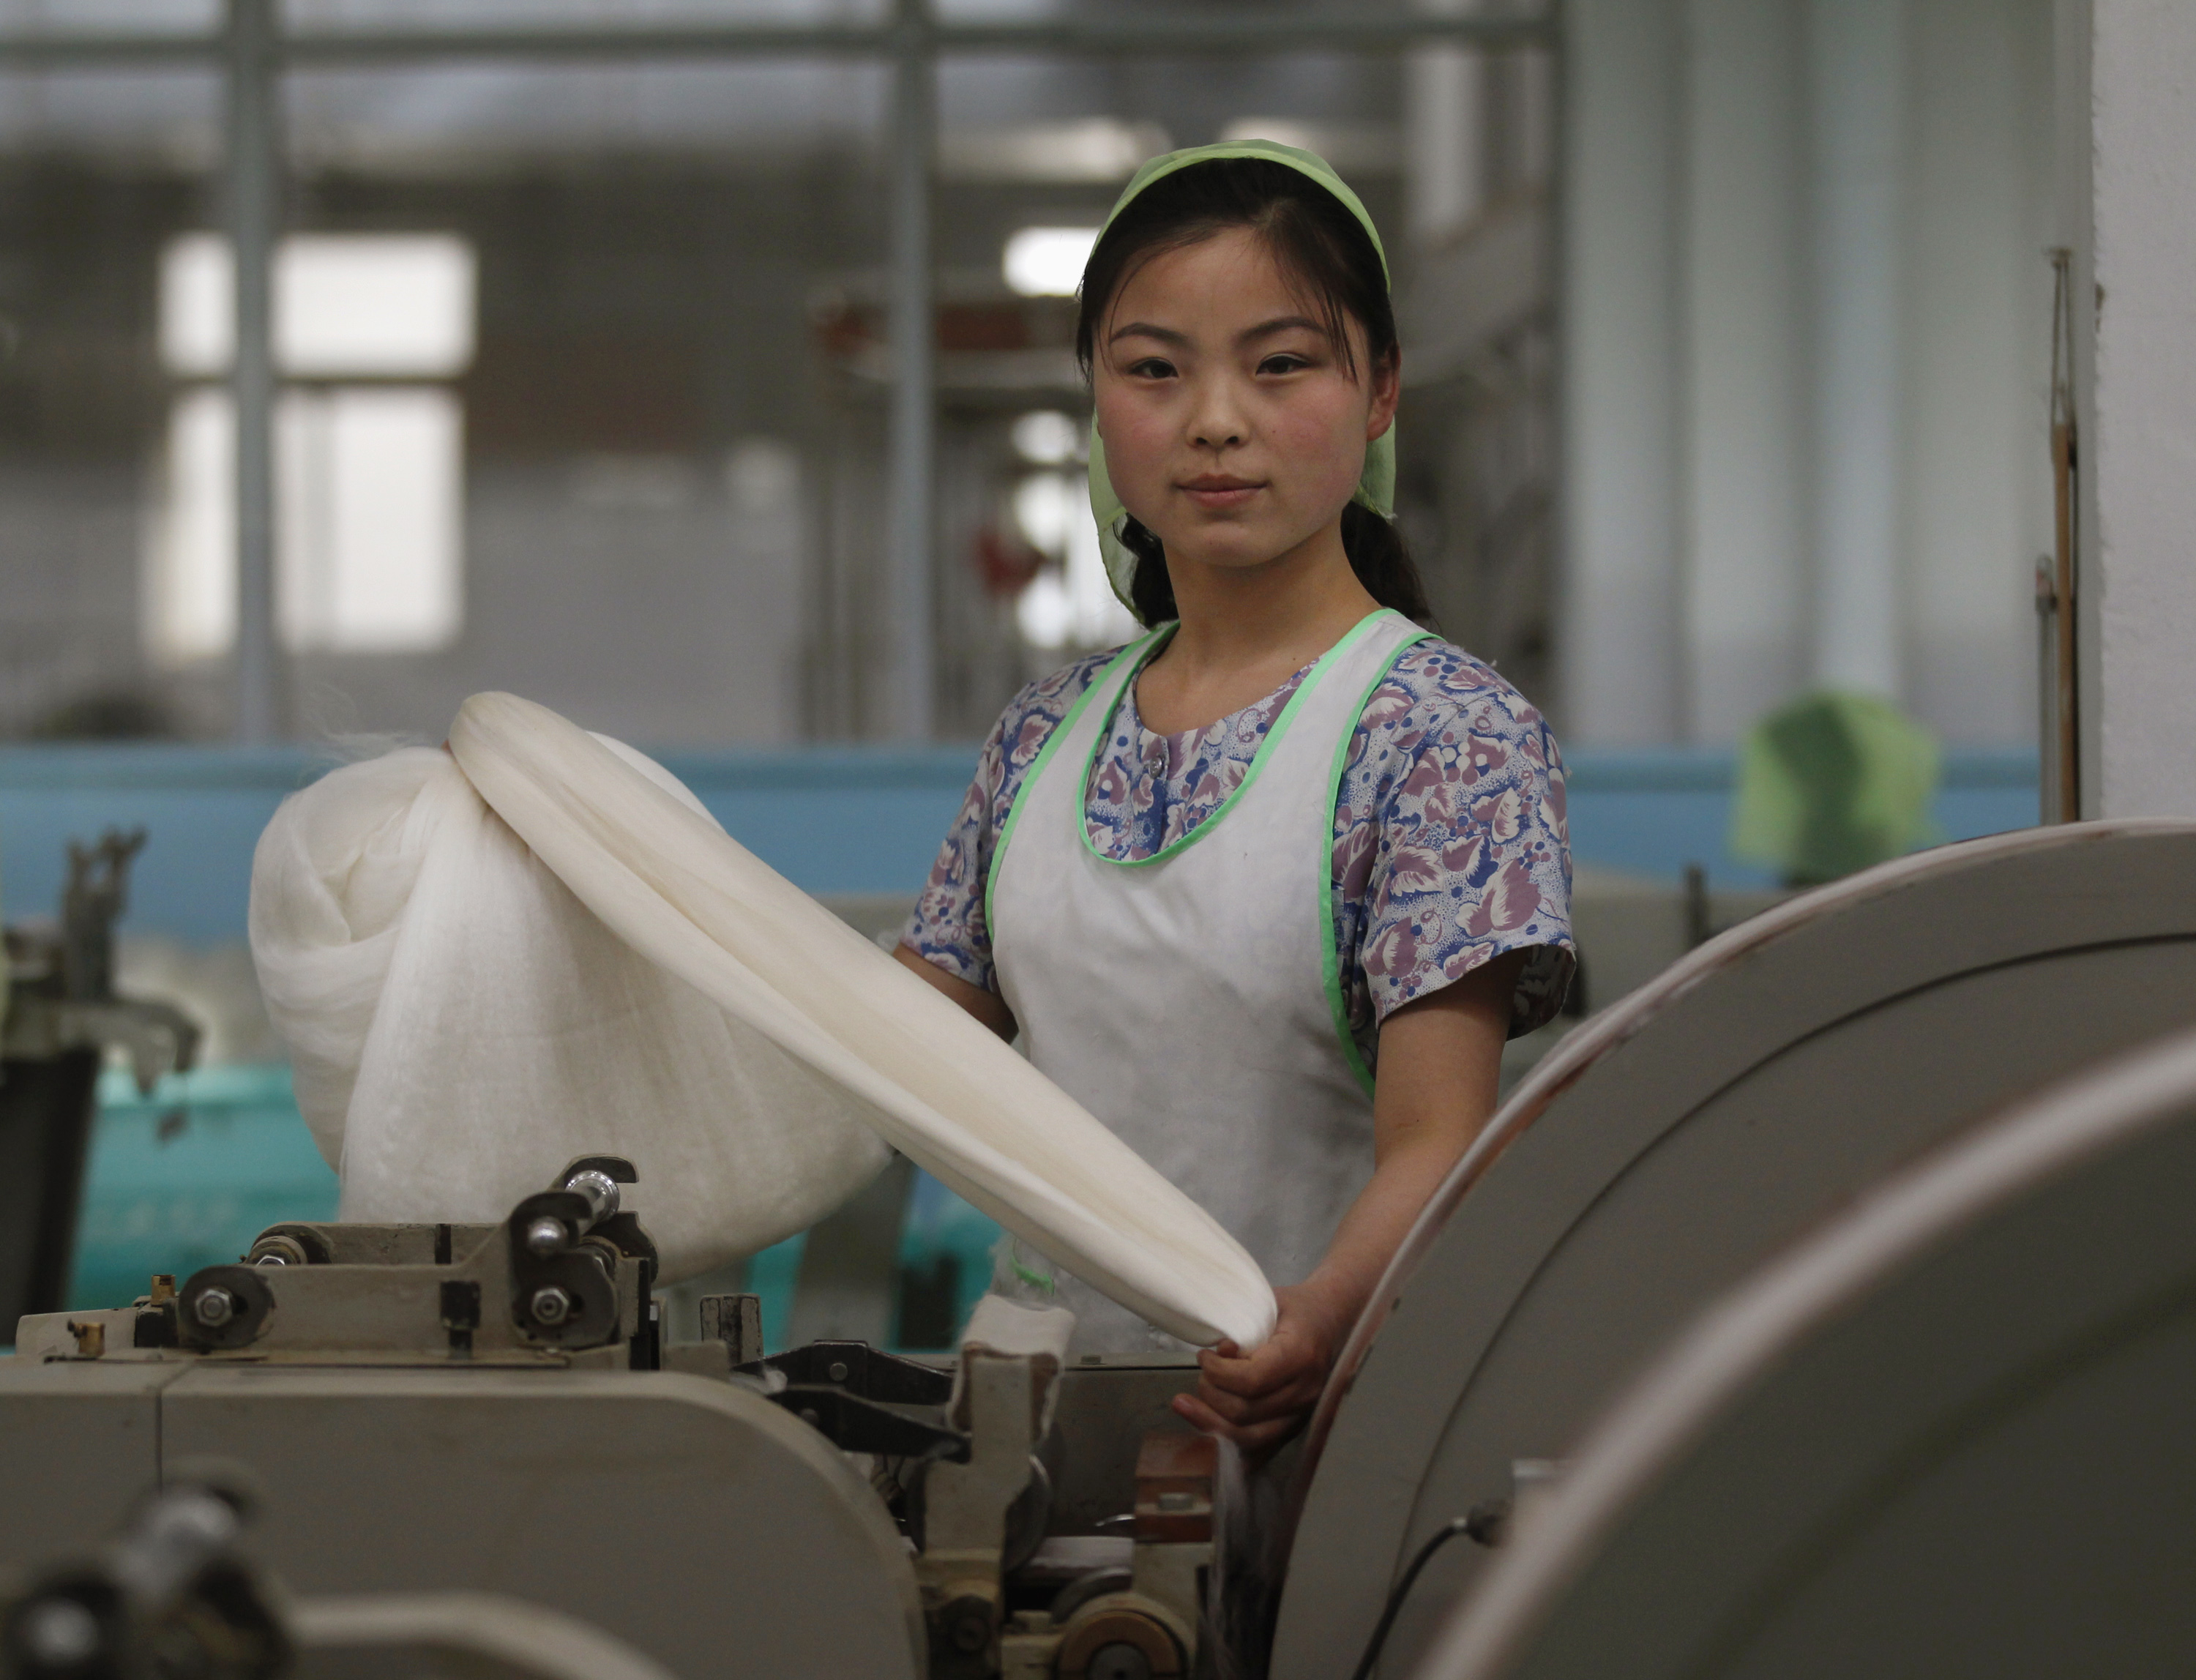 SLIDESHOW: North Korea's women workers